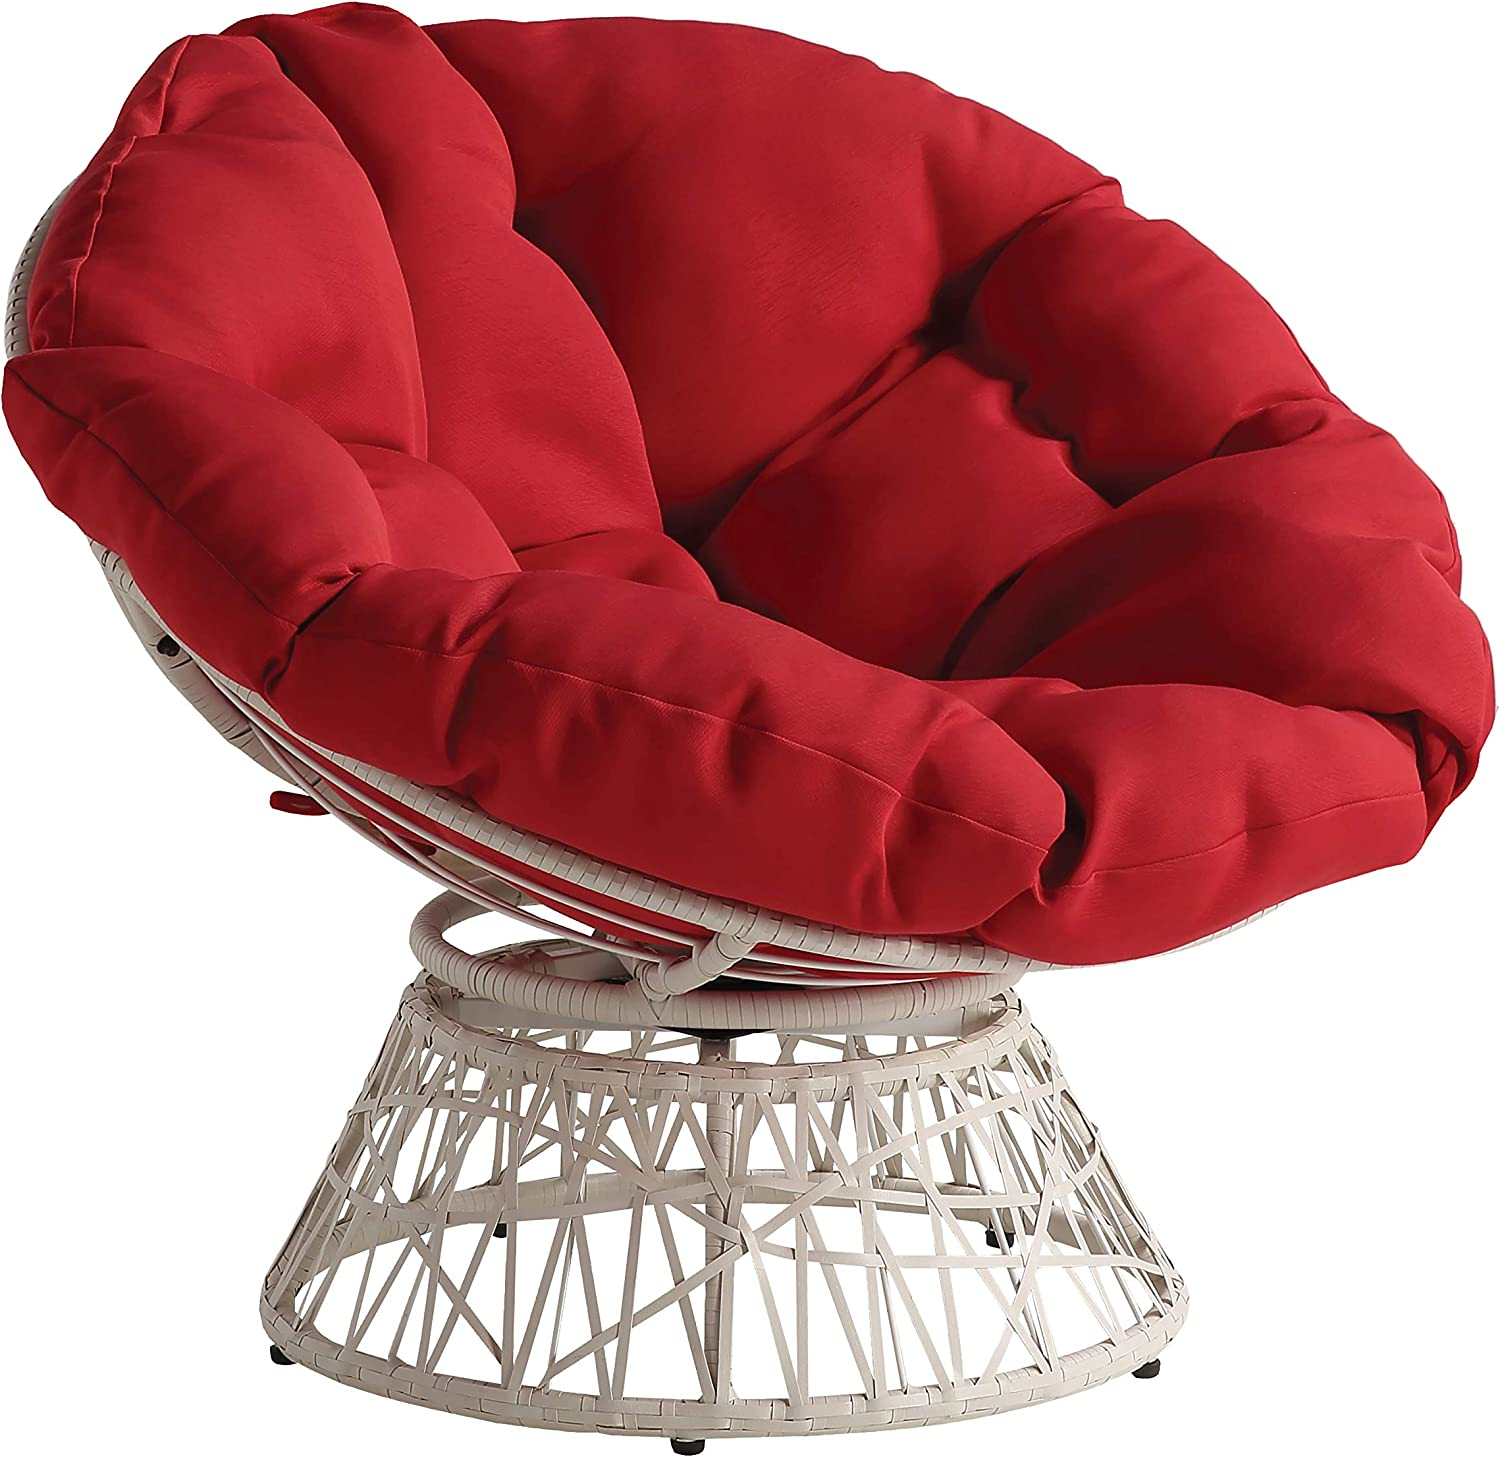 OSP Home Furnishings Wicker Papasan Chair with 360-Degree Swivel, Cream Frame with Red Cushion